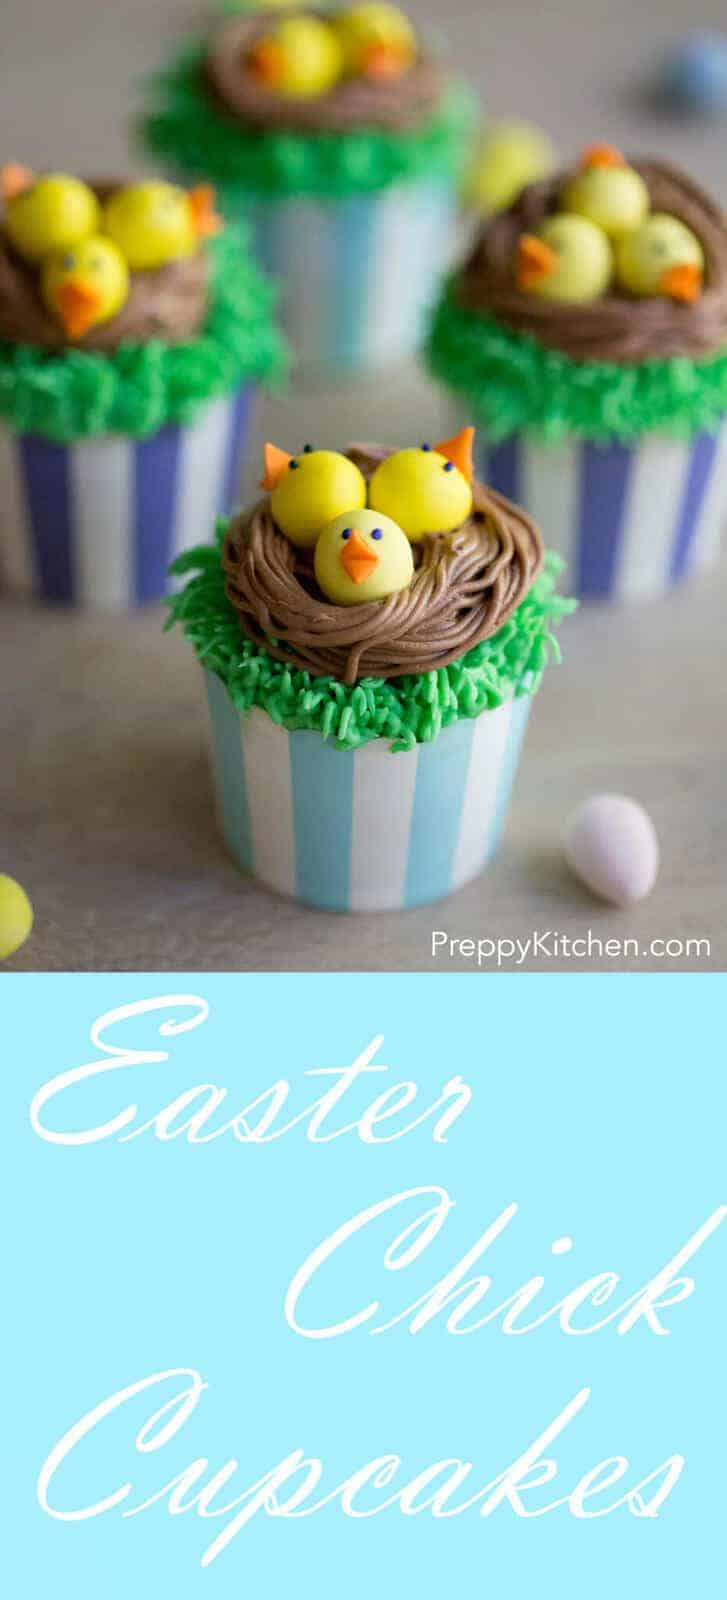 Maybe the cutest easter cupcakes ever and it doesn't hurt that they're delicious!